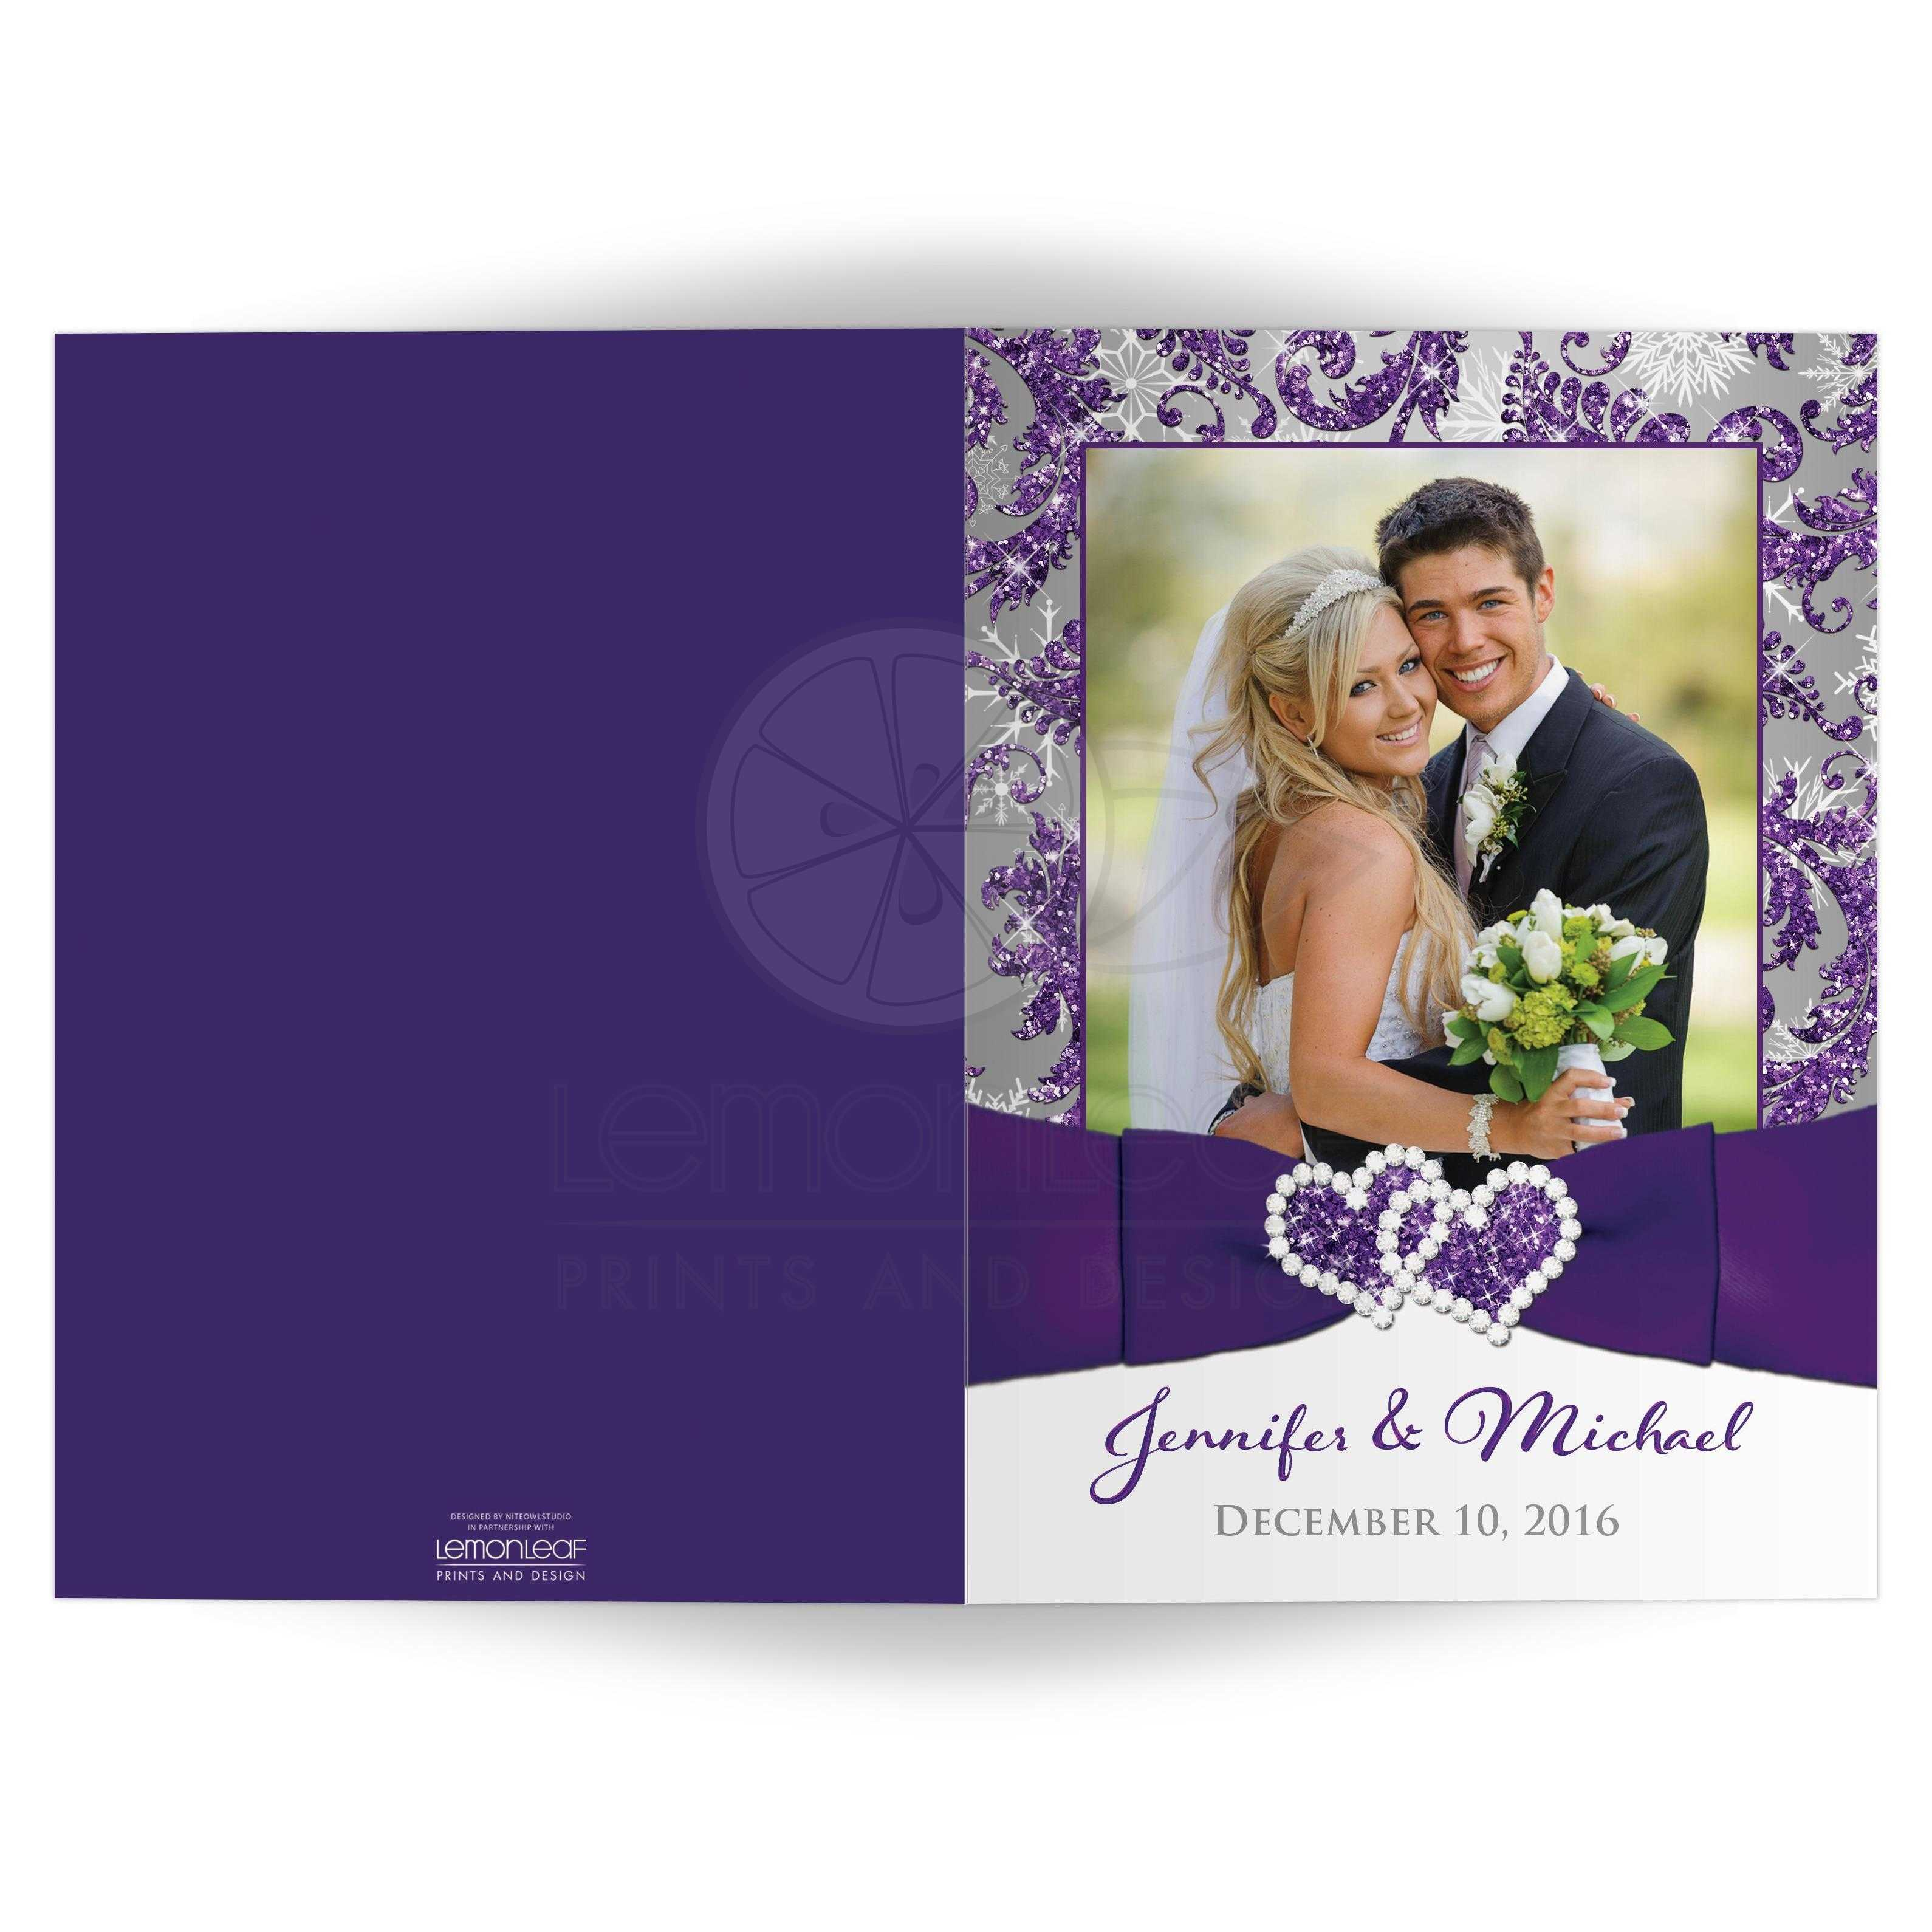 Thank You Letter Mom And Dad From Bride Wedding Cards For Pas Ideas Card